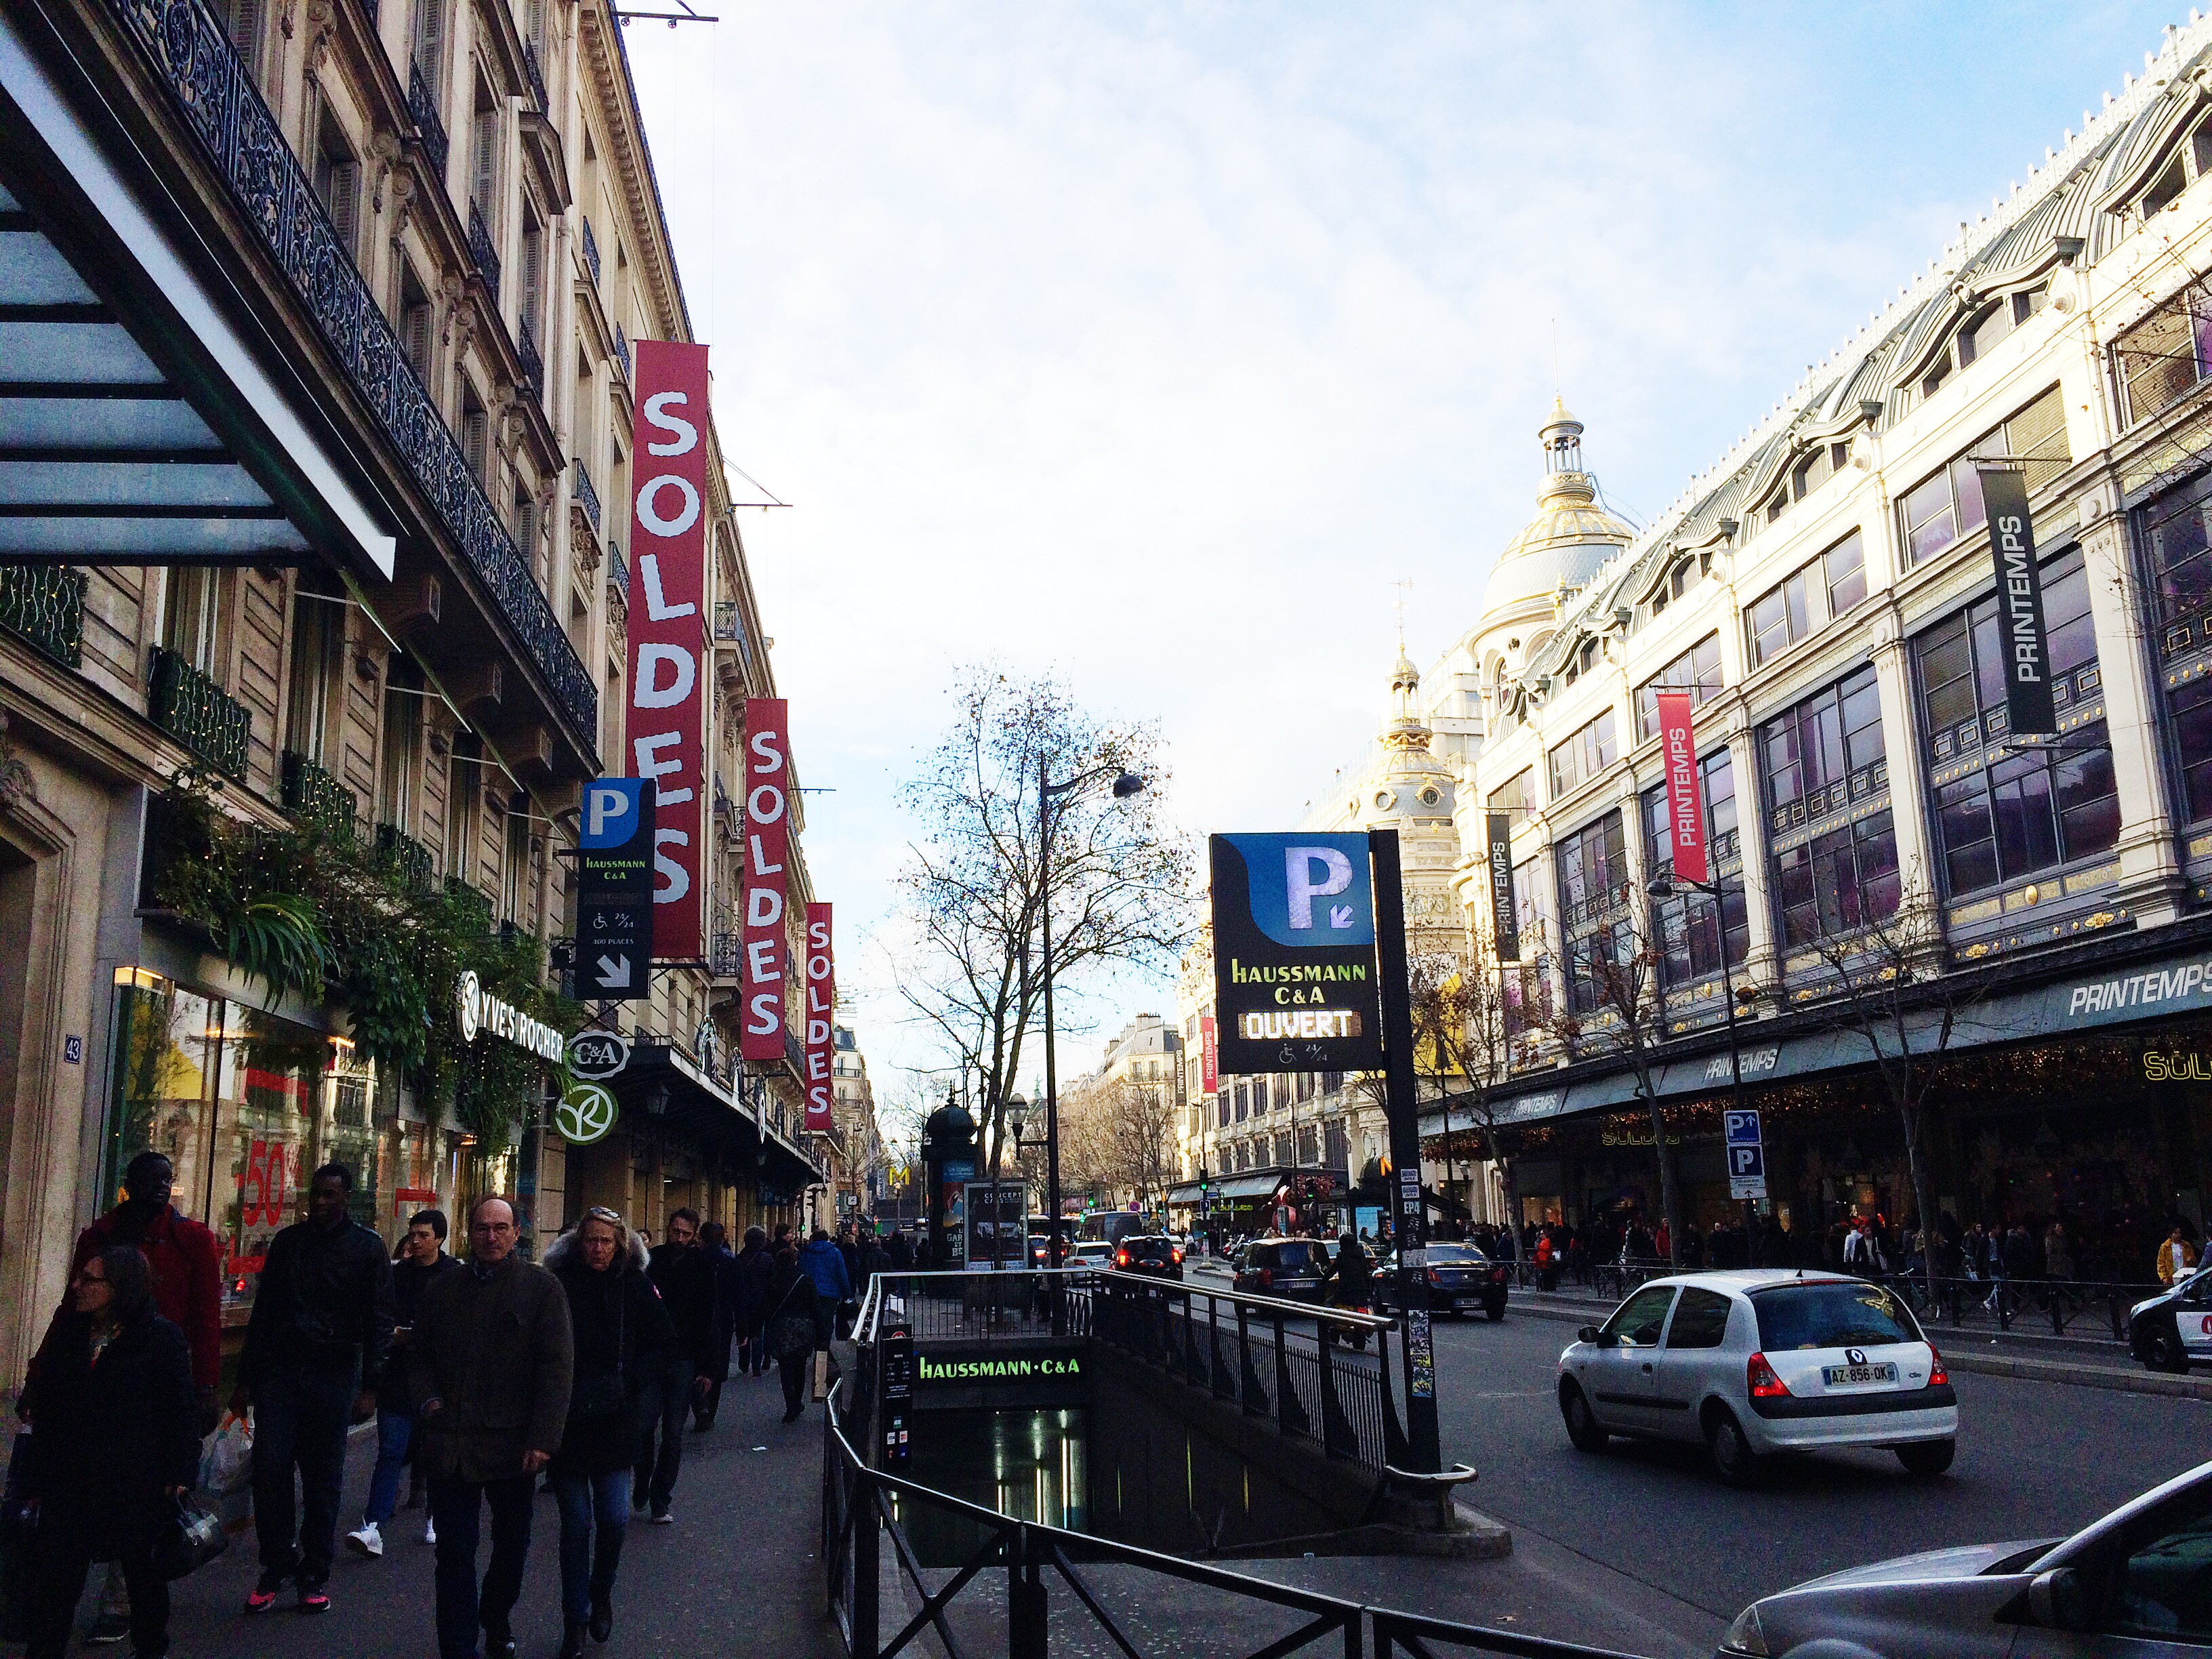 Soldes Paris 2016 A Beginner S Guide To Les Soldes